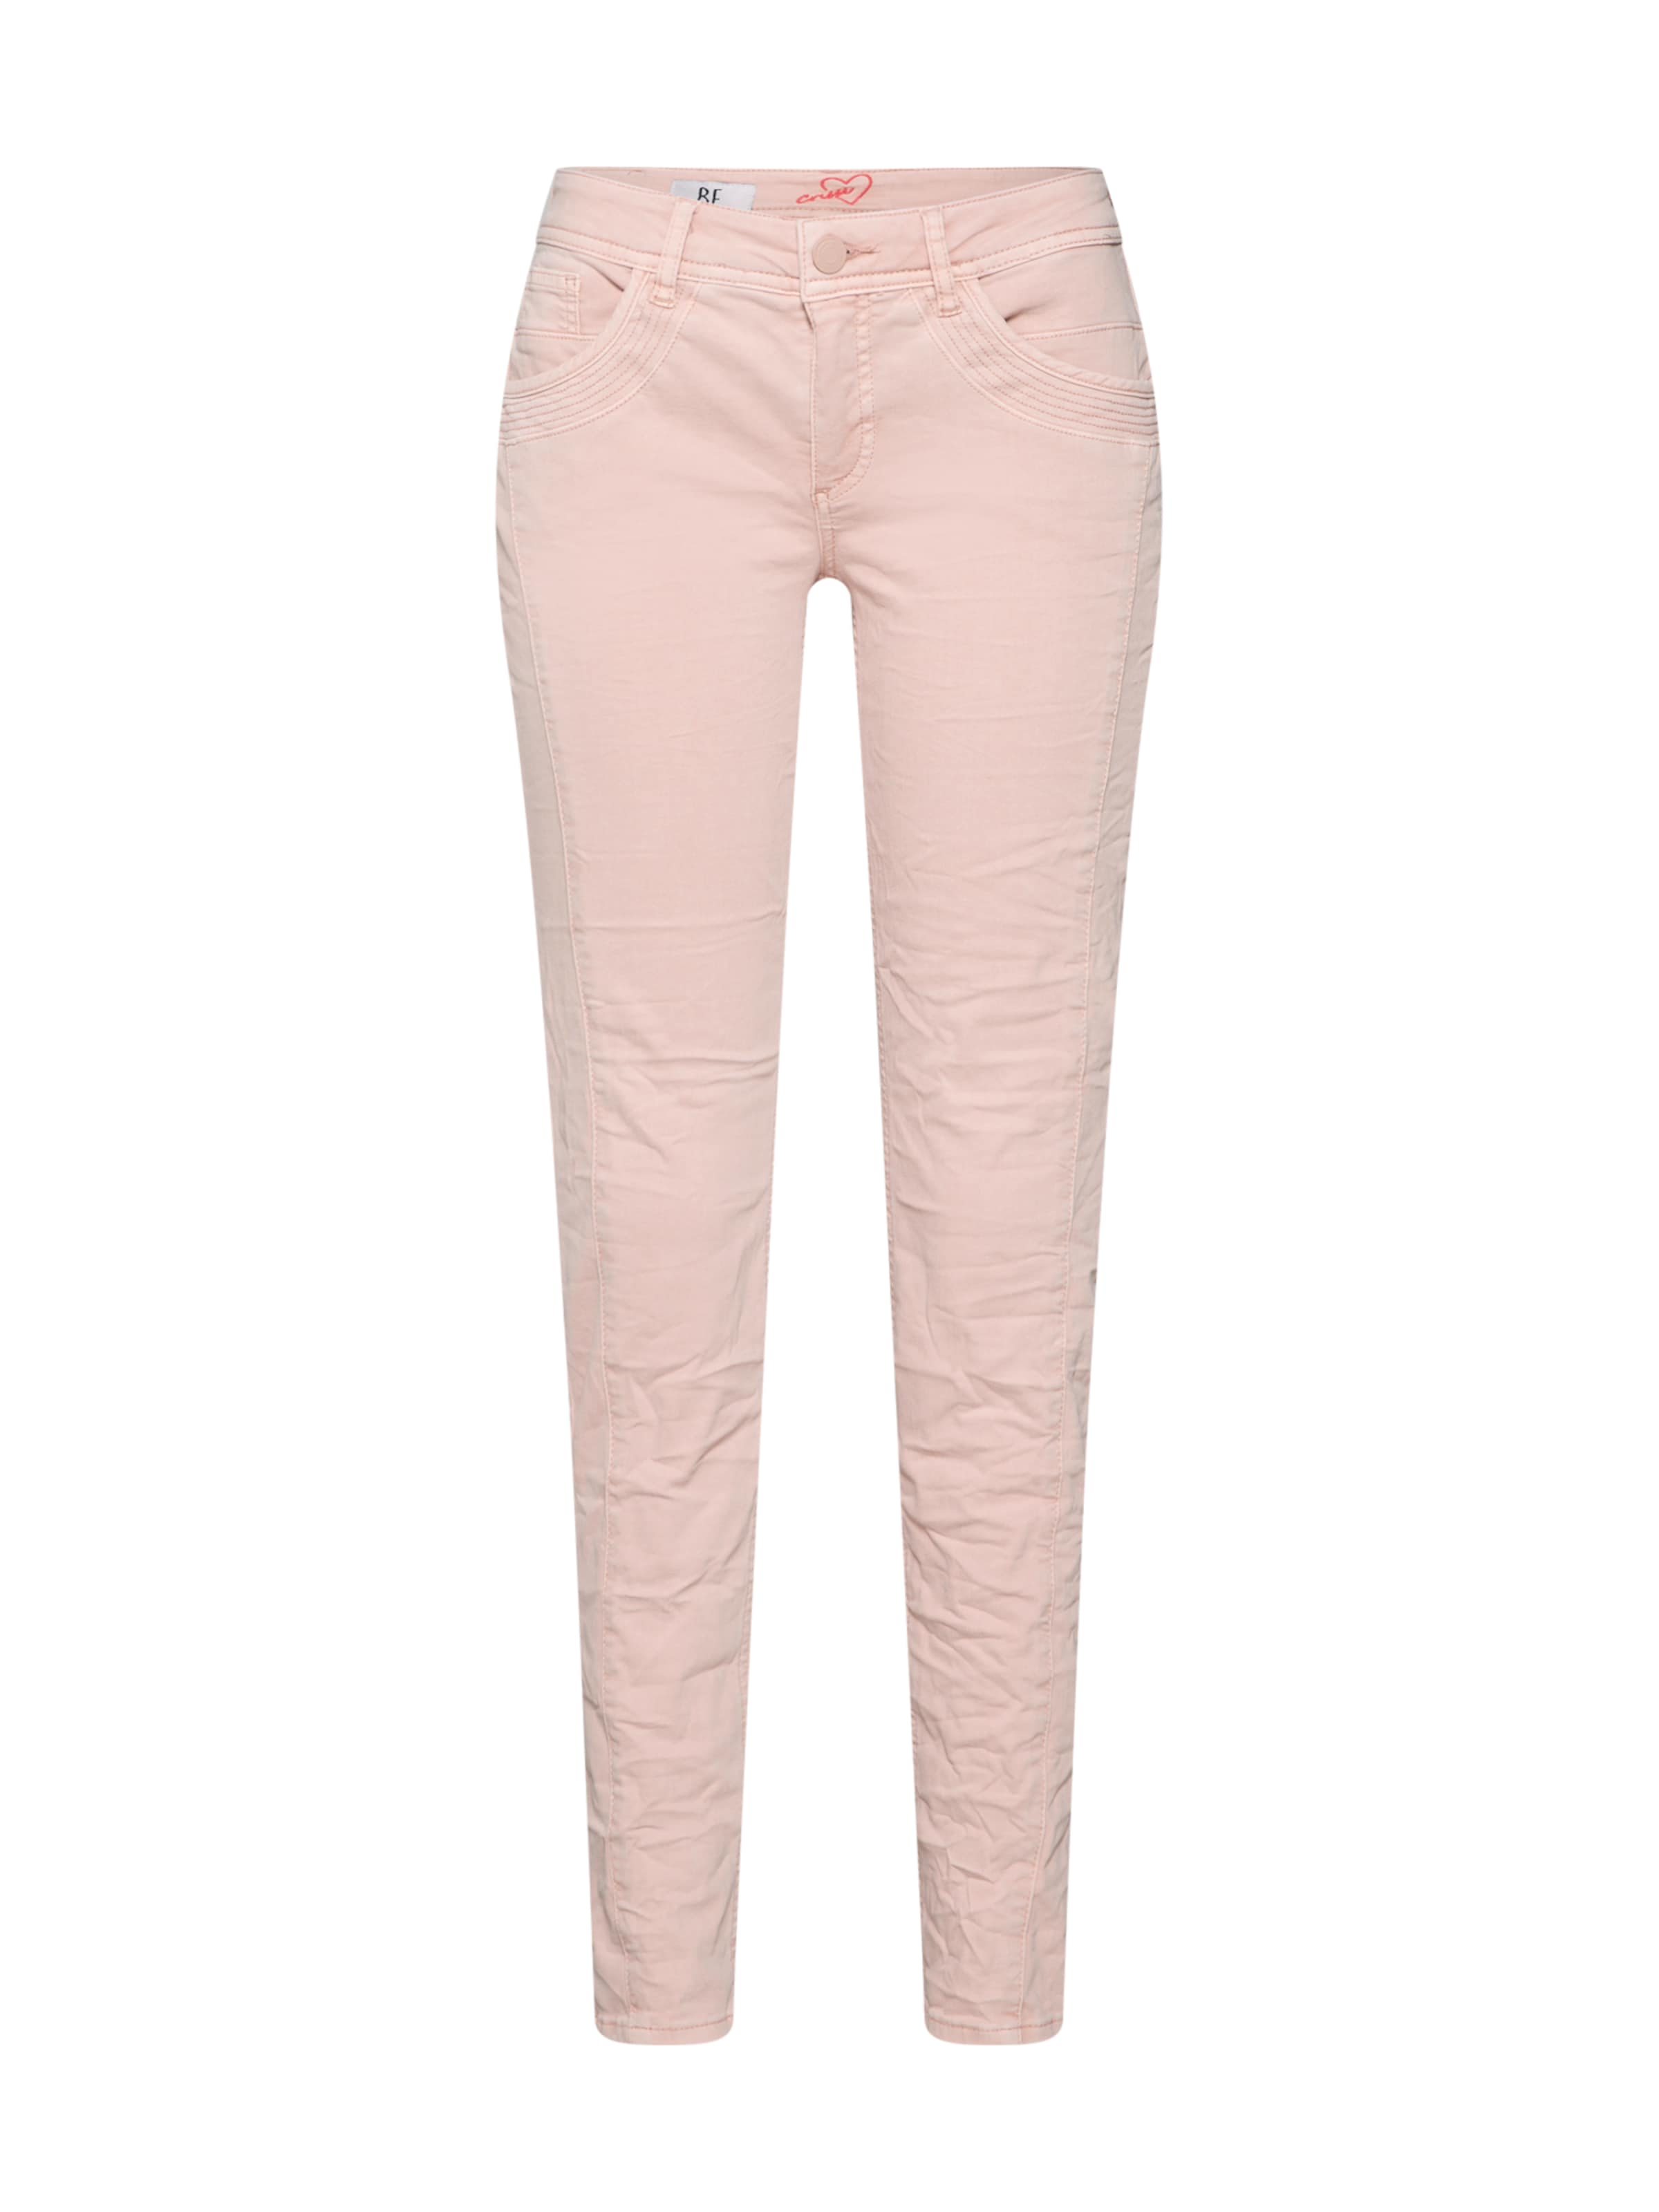 Rosa In One 'crissi' Jeans Street mNnPyv0O8w